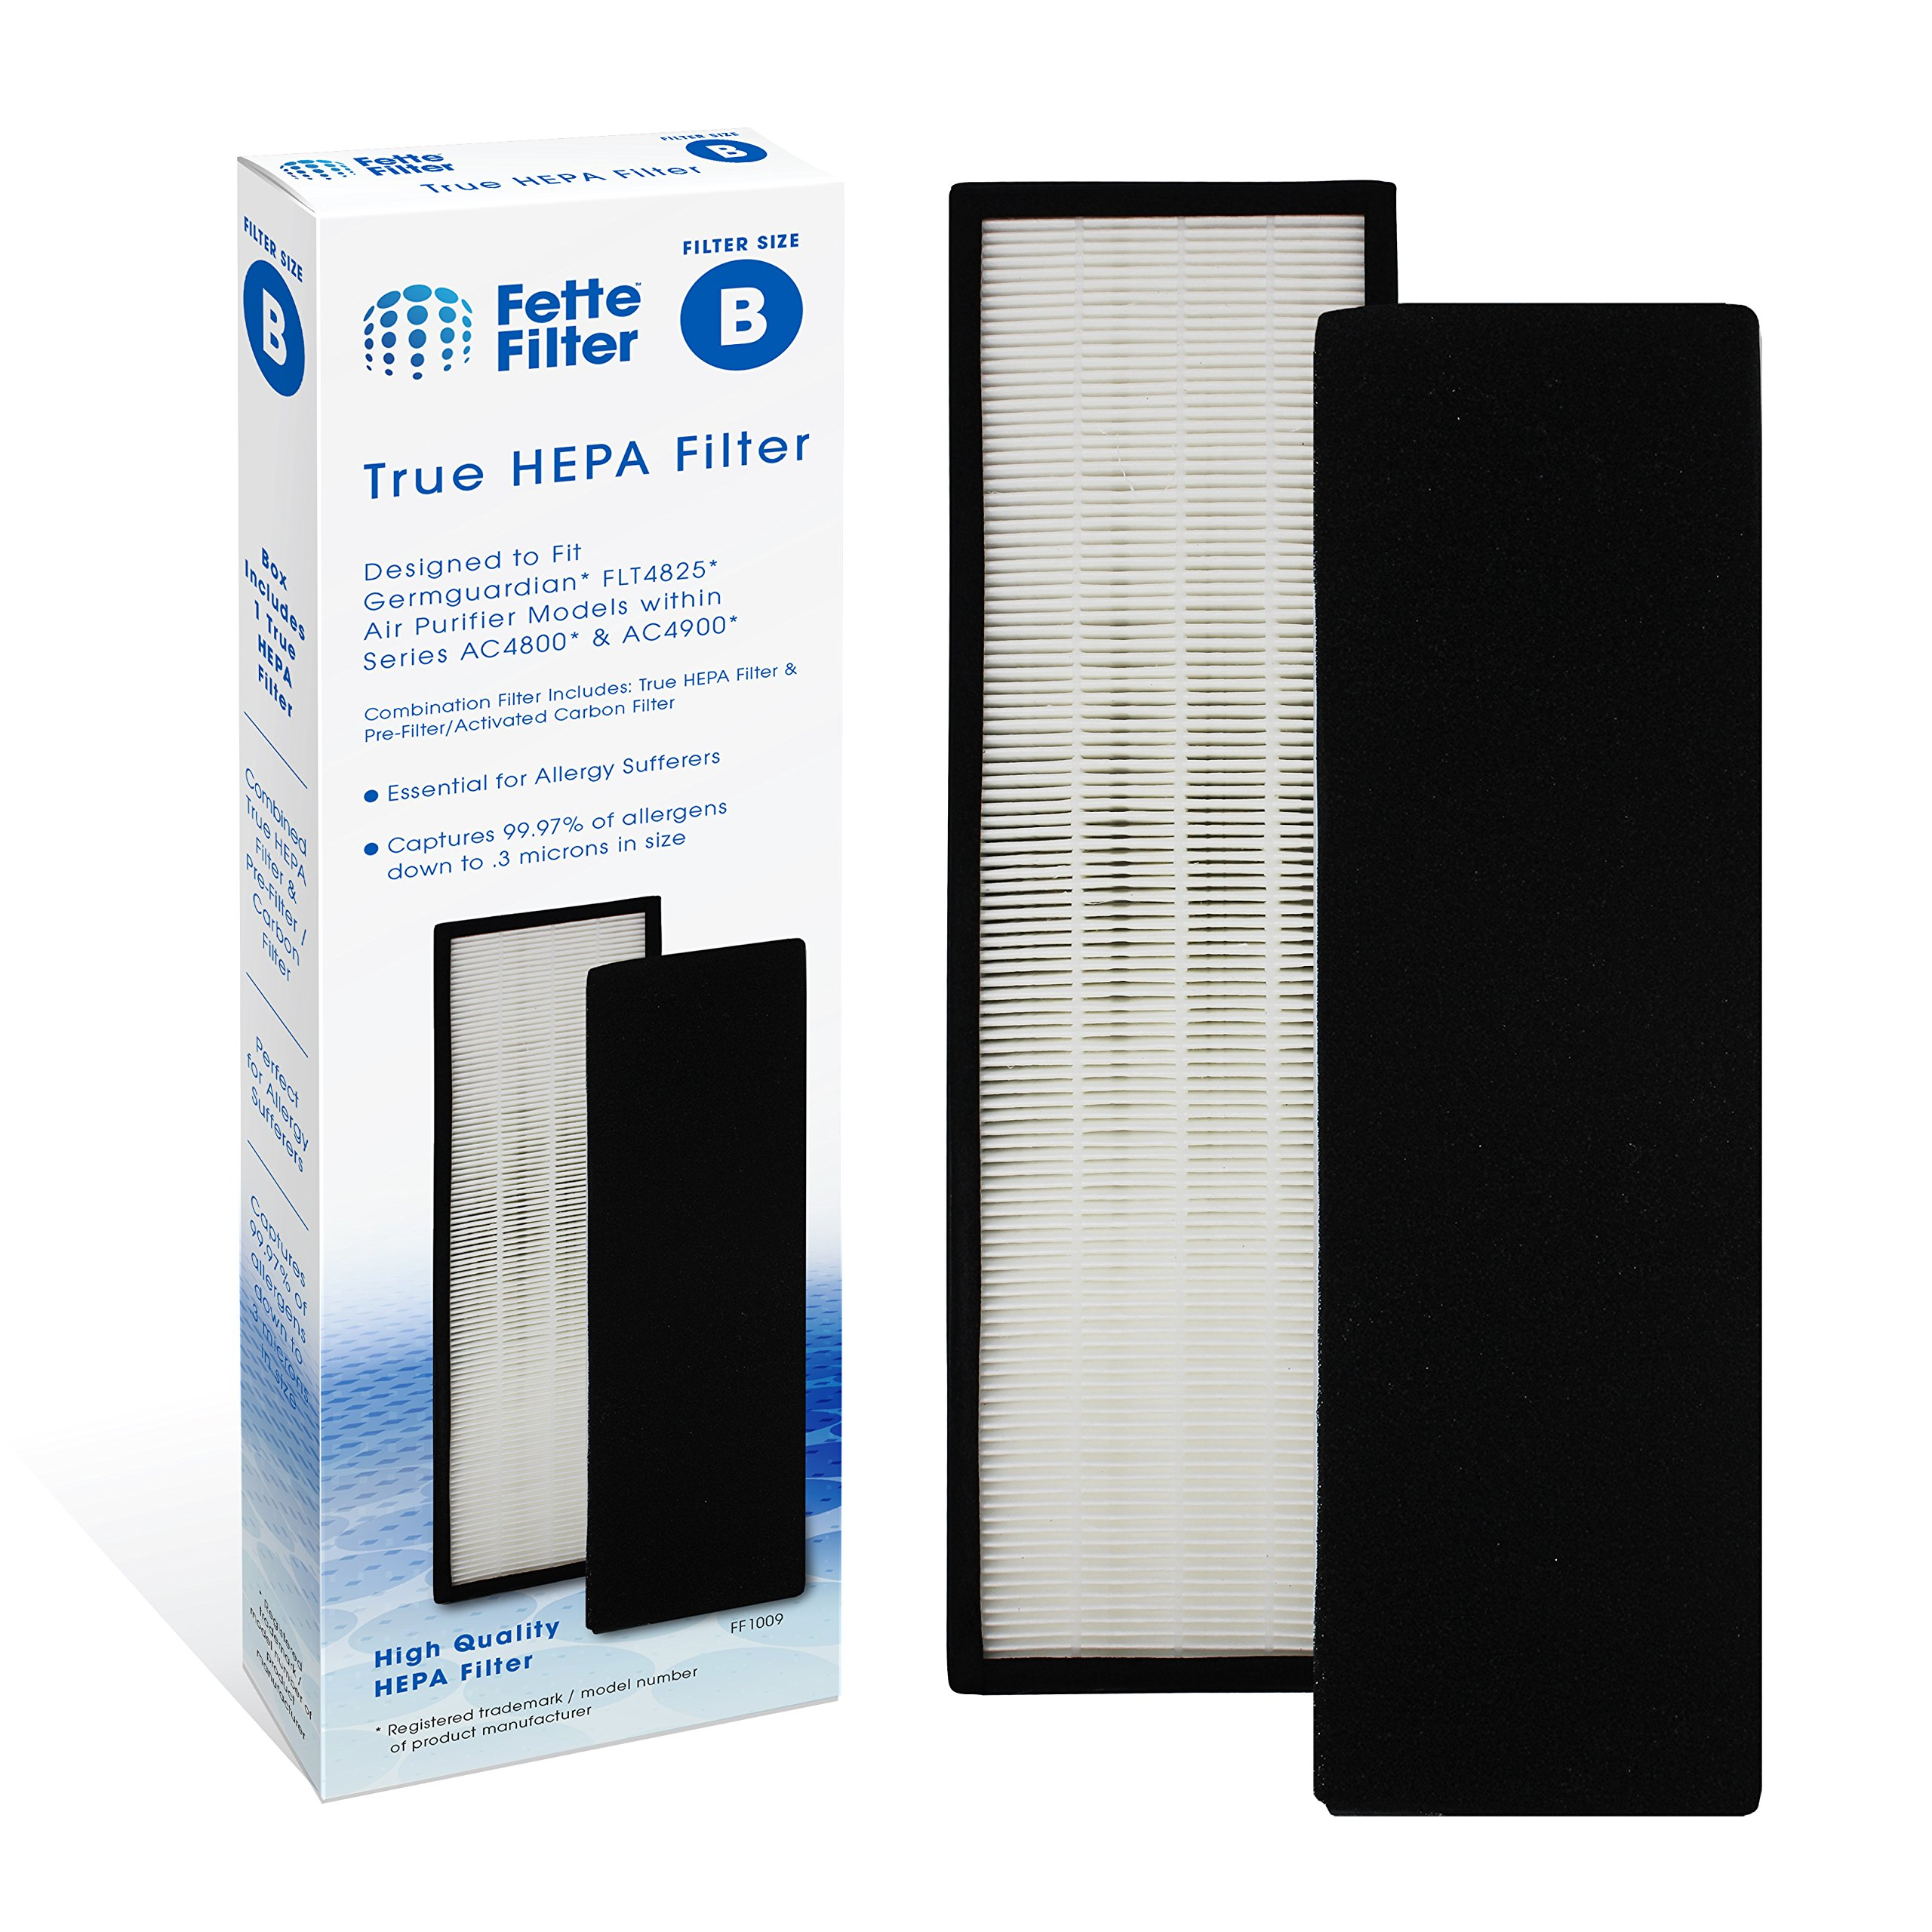 Fette Filter True HEPA Filter Compatible GermGuardian FLT4825 Models AC4300/AC4800/4900 Series Air Purifiers (Filter B)